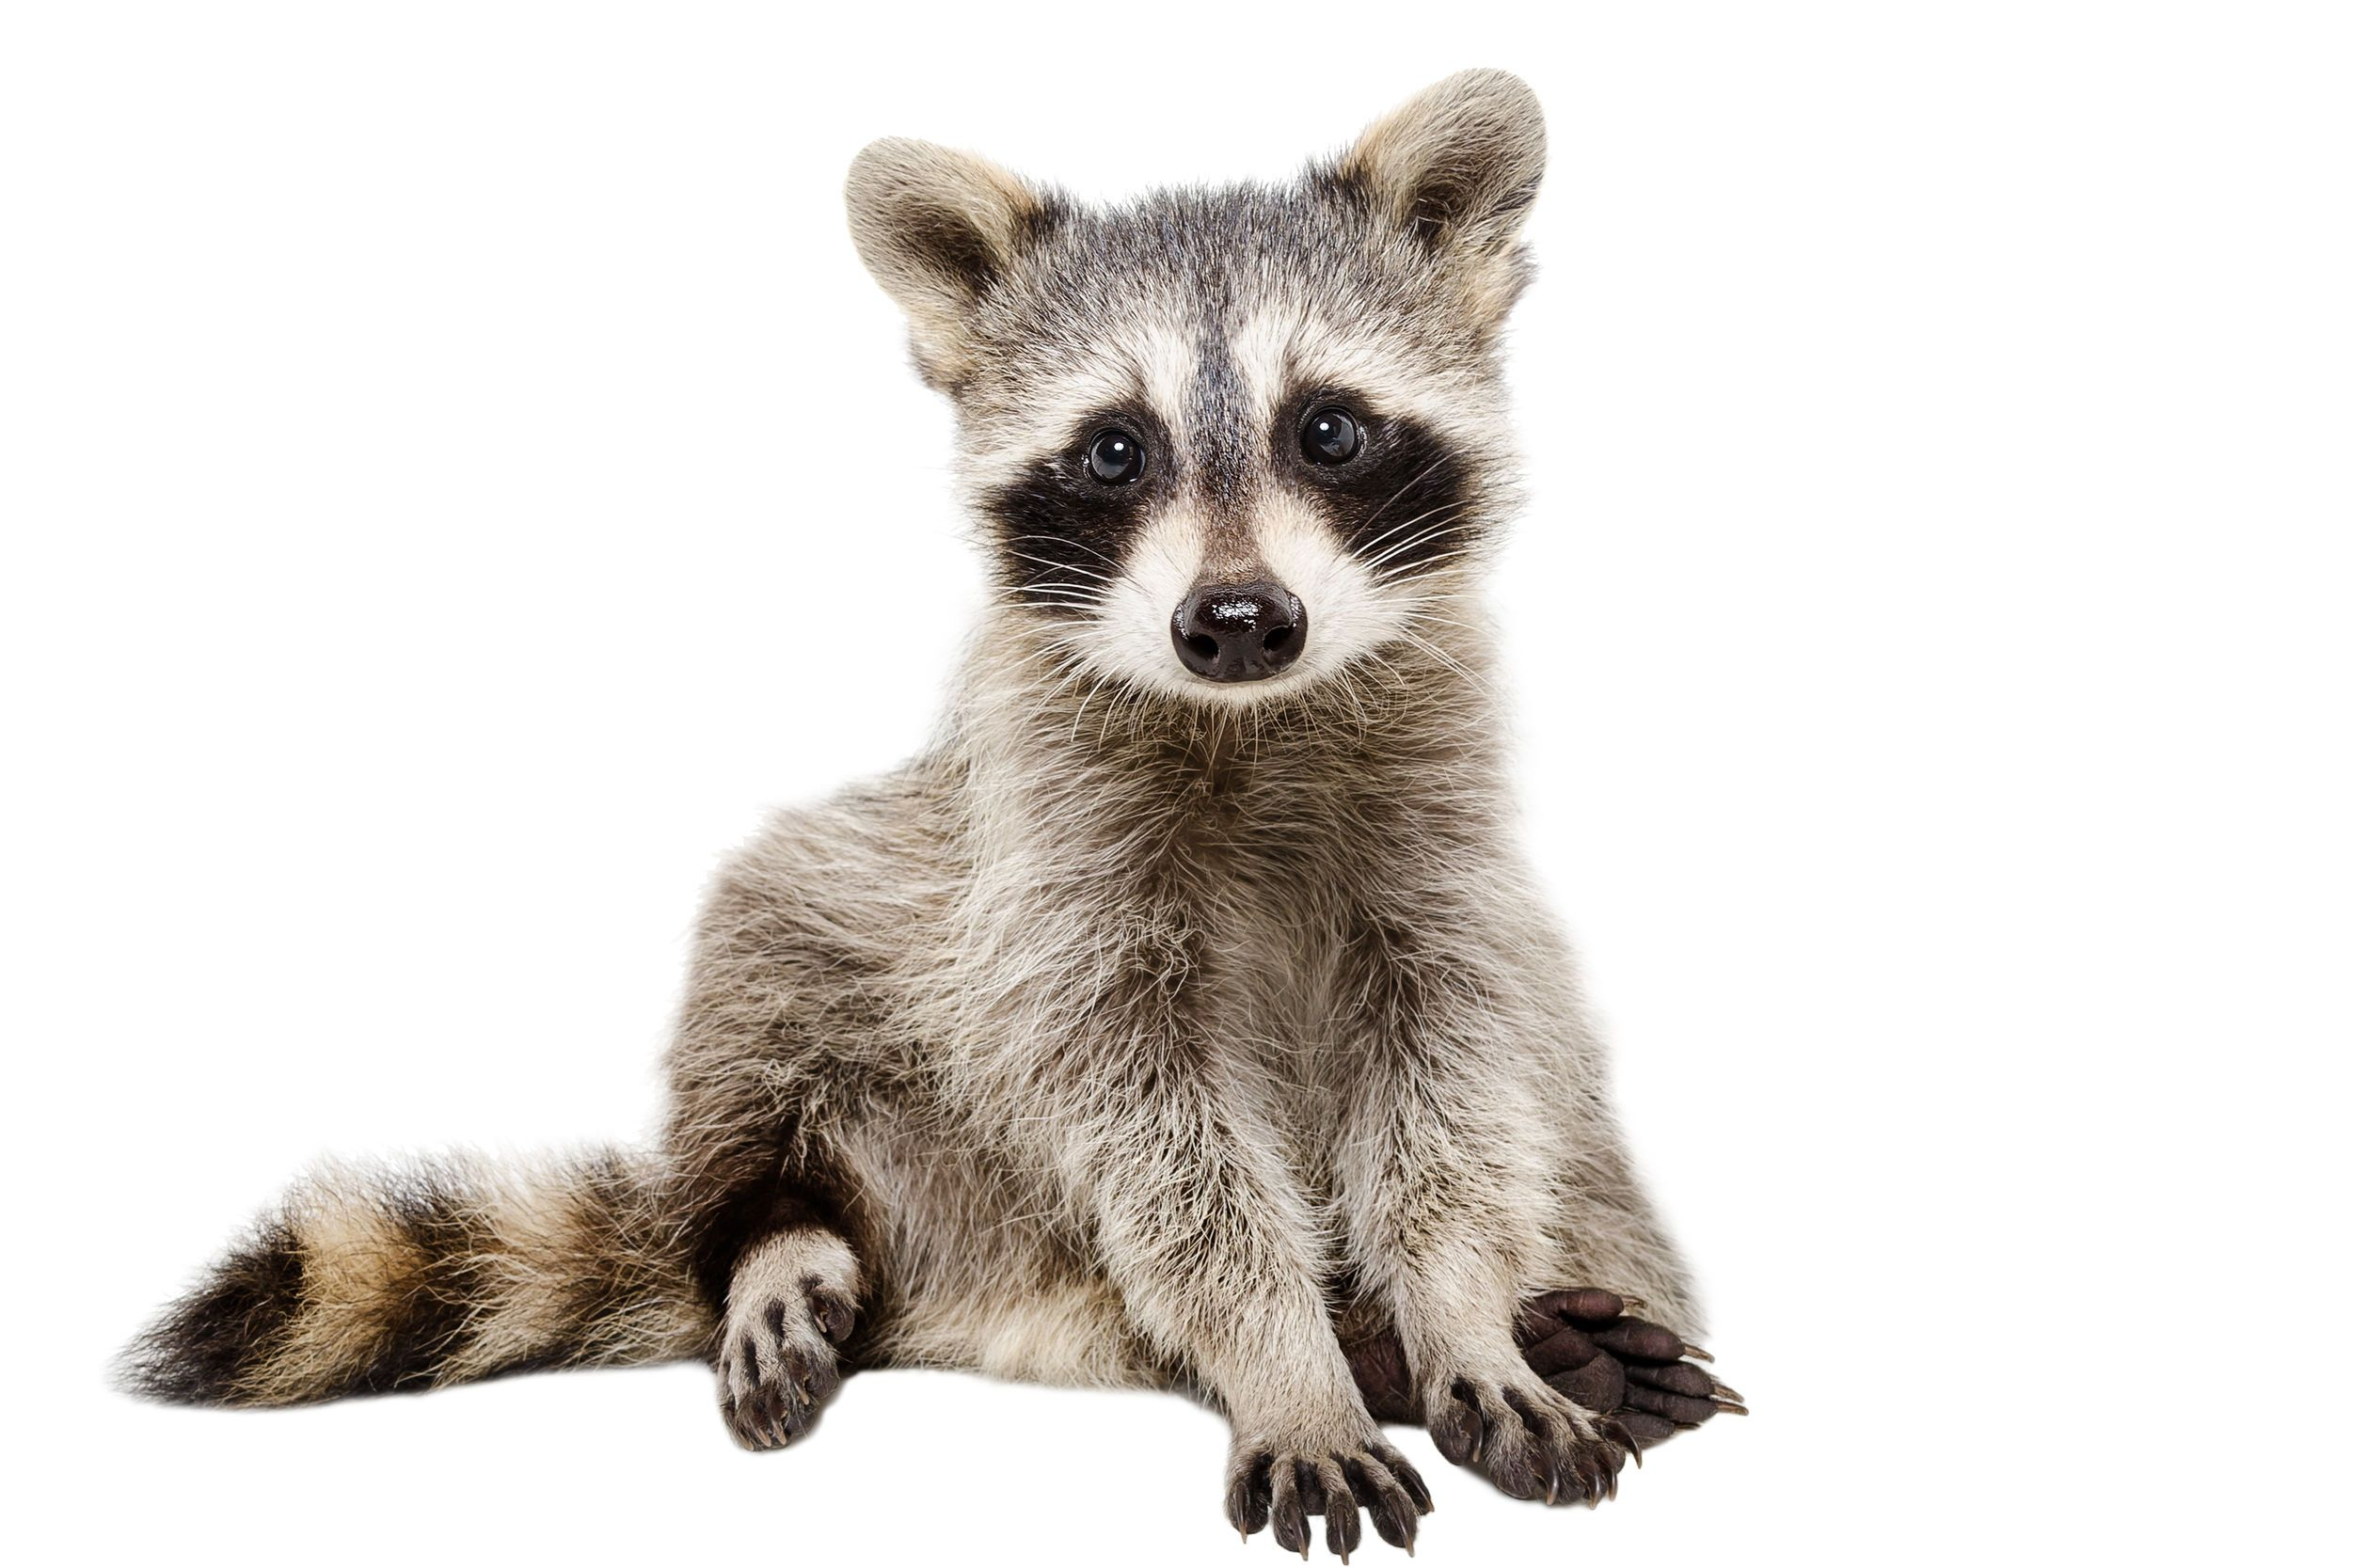 Curious baby raccoon sitting down